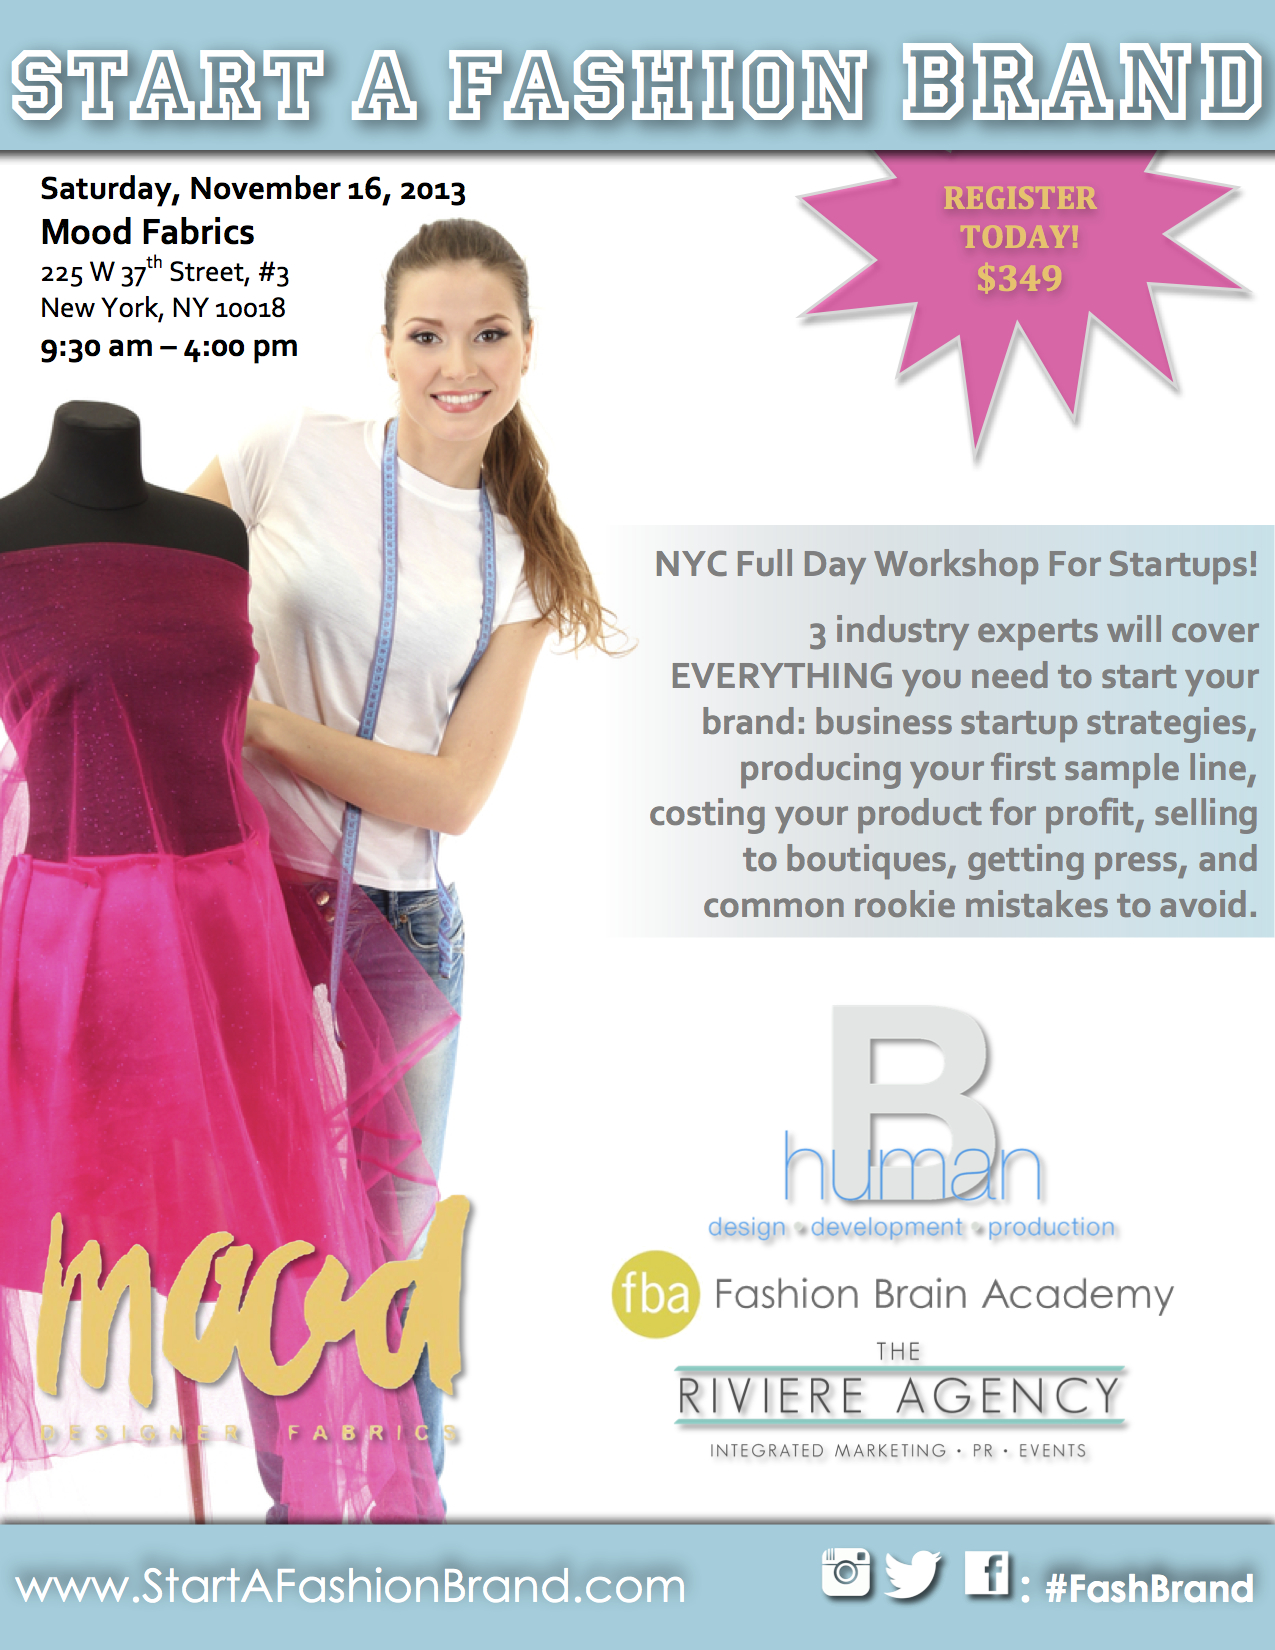 Mood Fabrics Is Hosting A Great Workshop Start A Fashion Brand